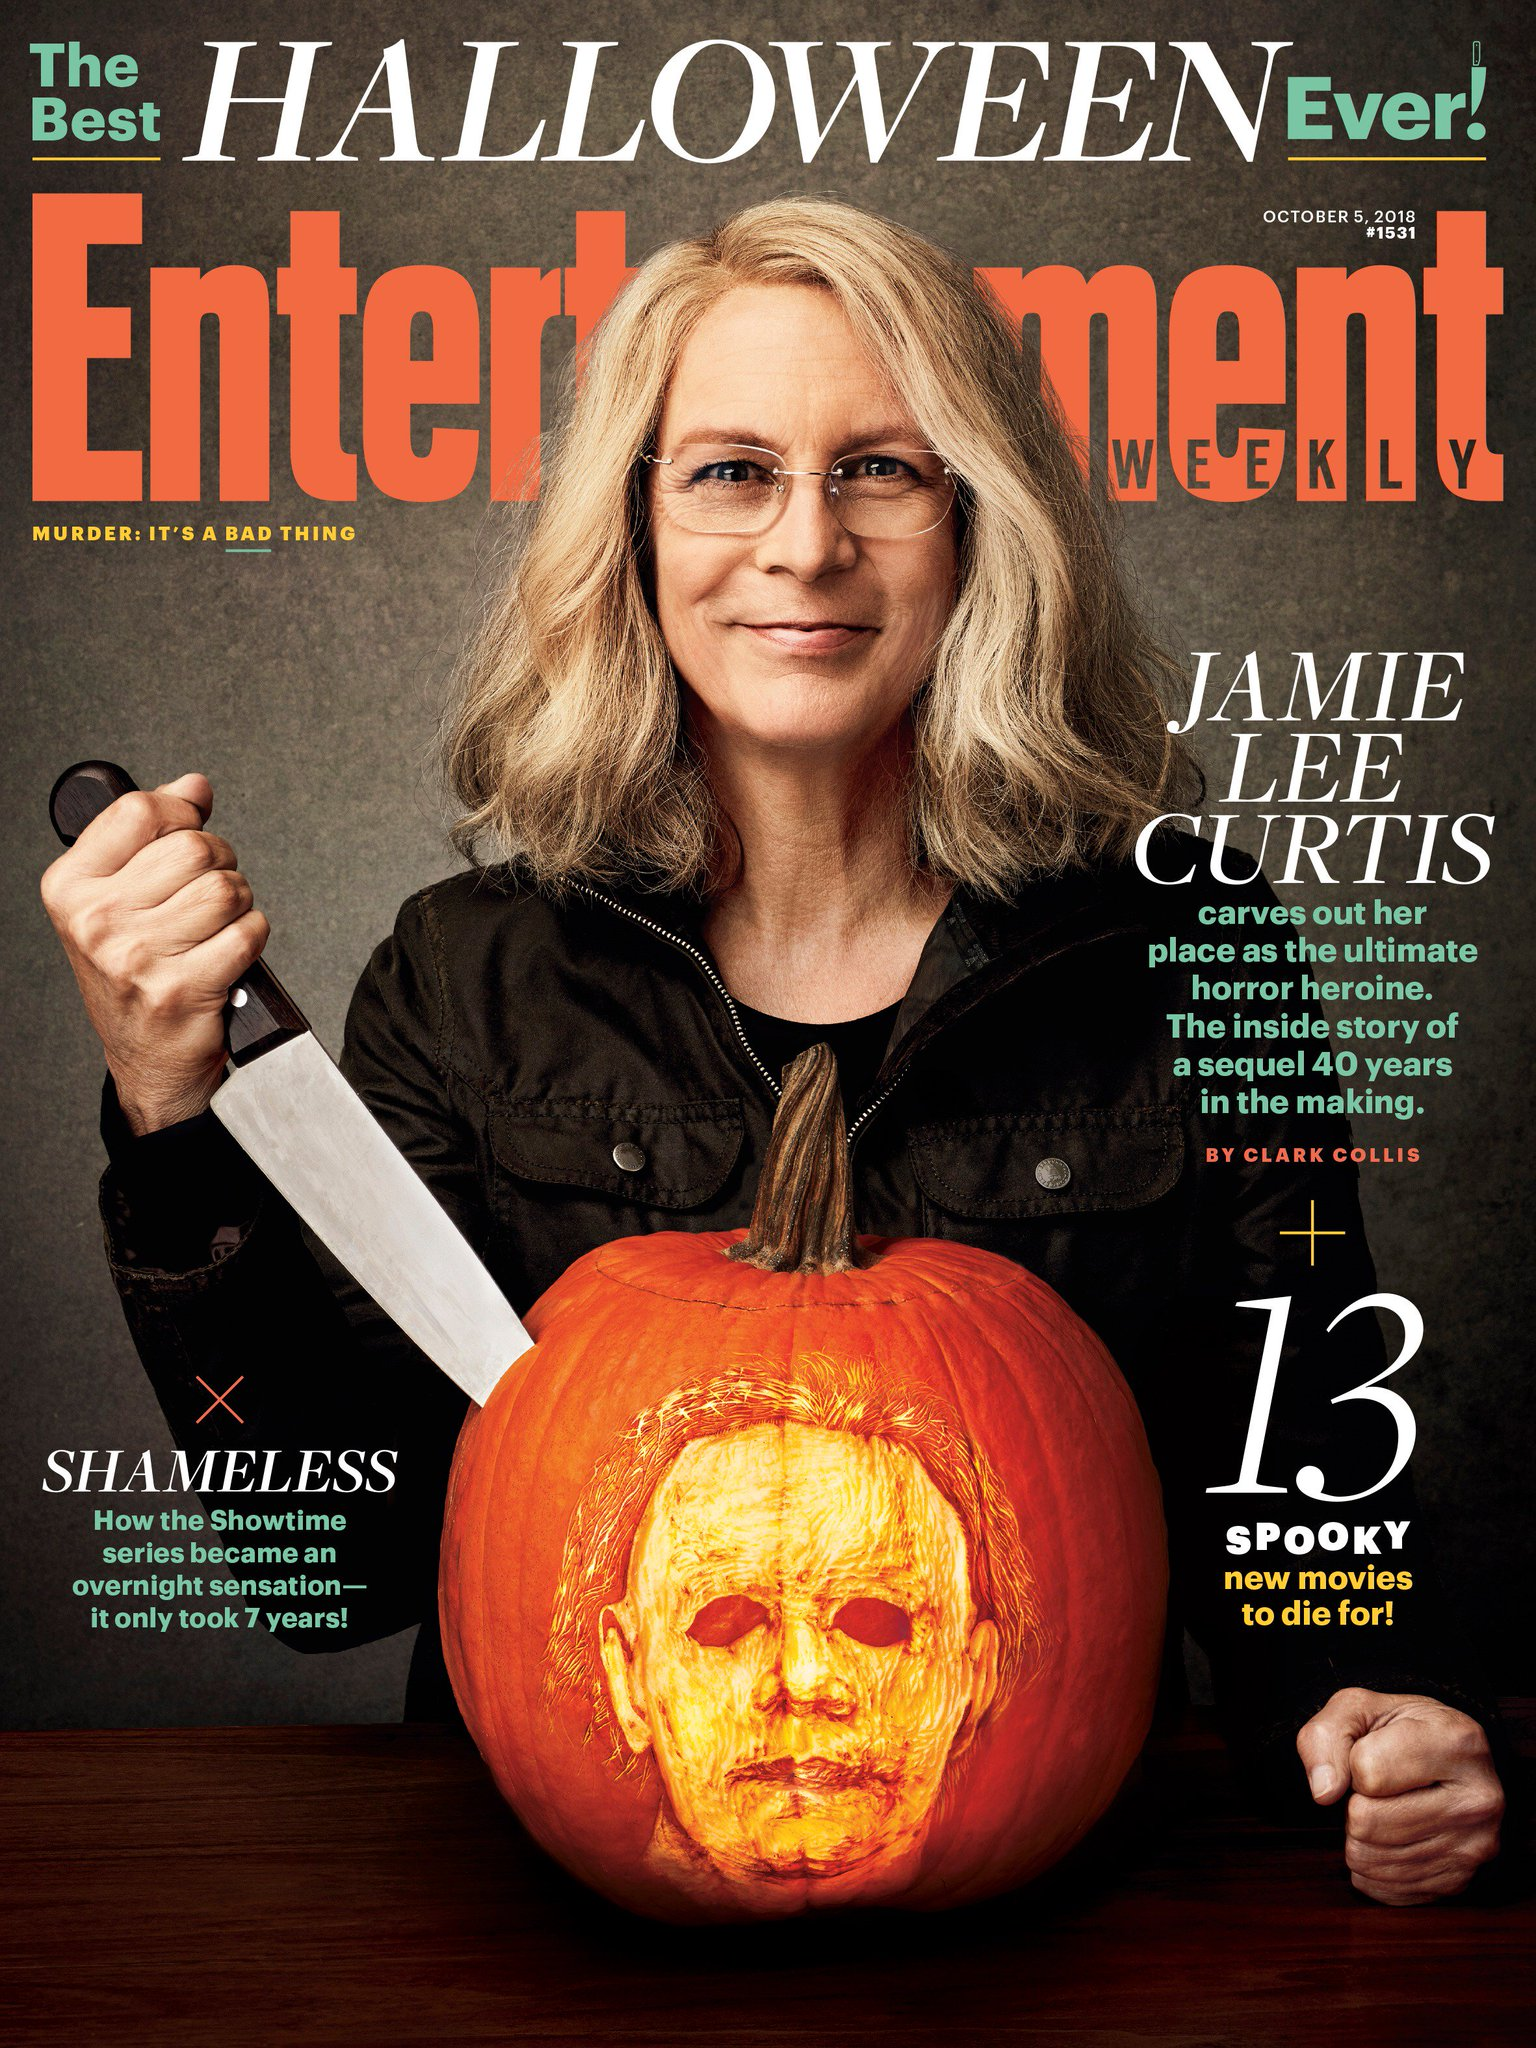 Jamie Lee Curtis On The 'Halloween' Film 'EW' Cover - SOUND